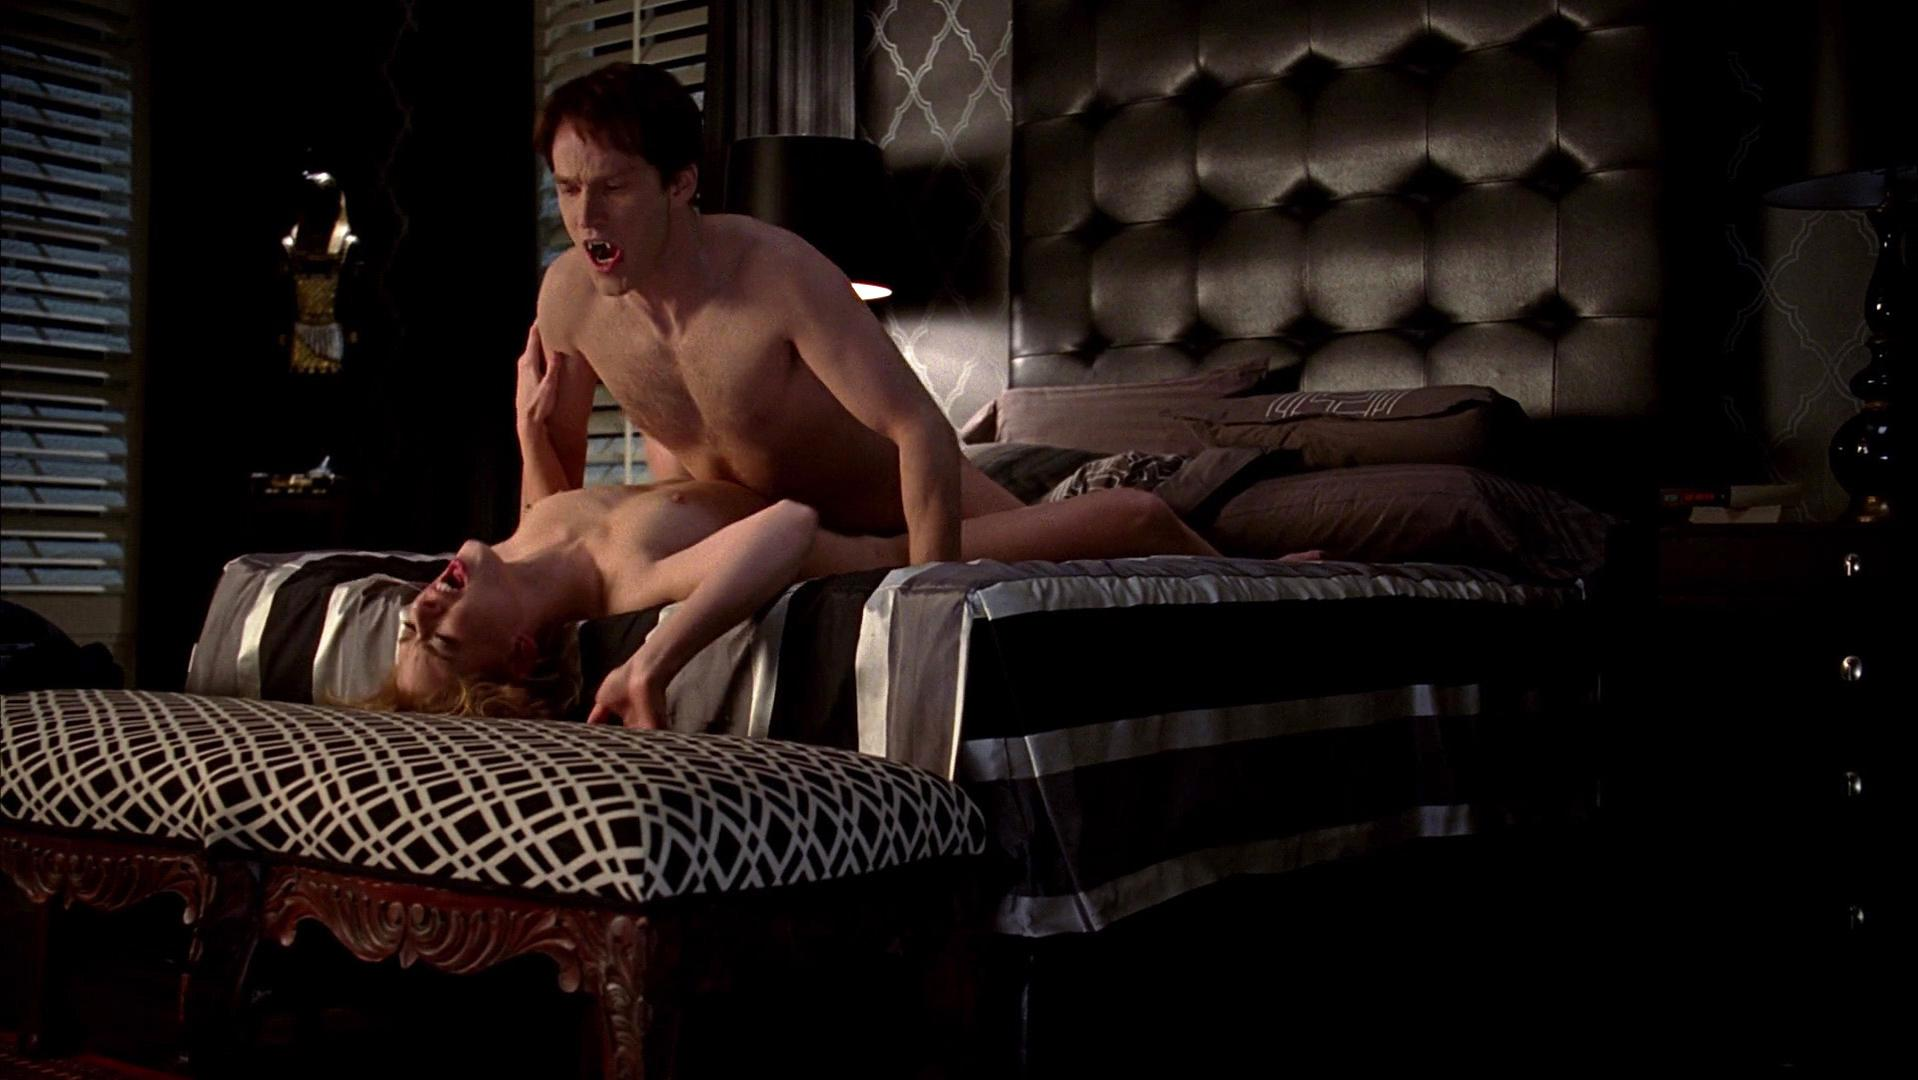 The best sex scene ever made